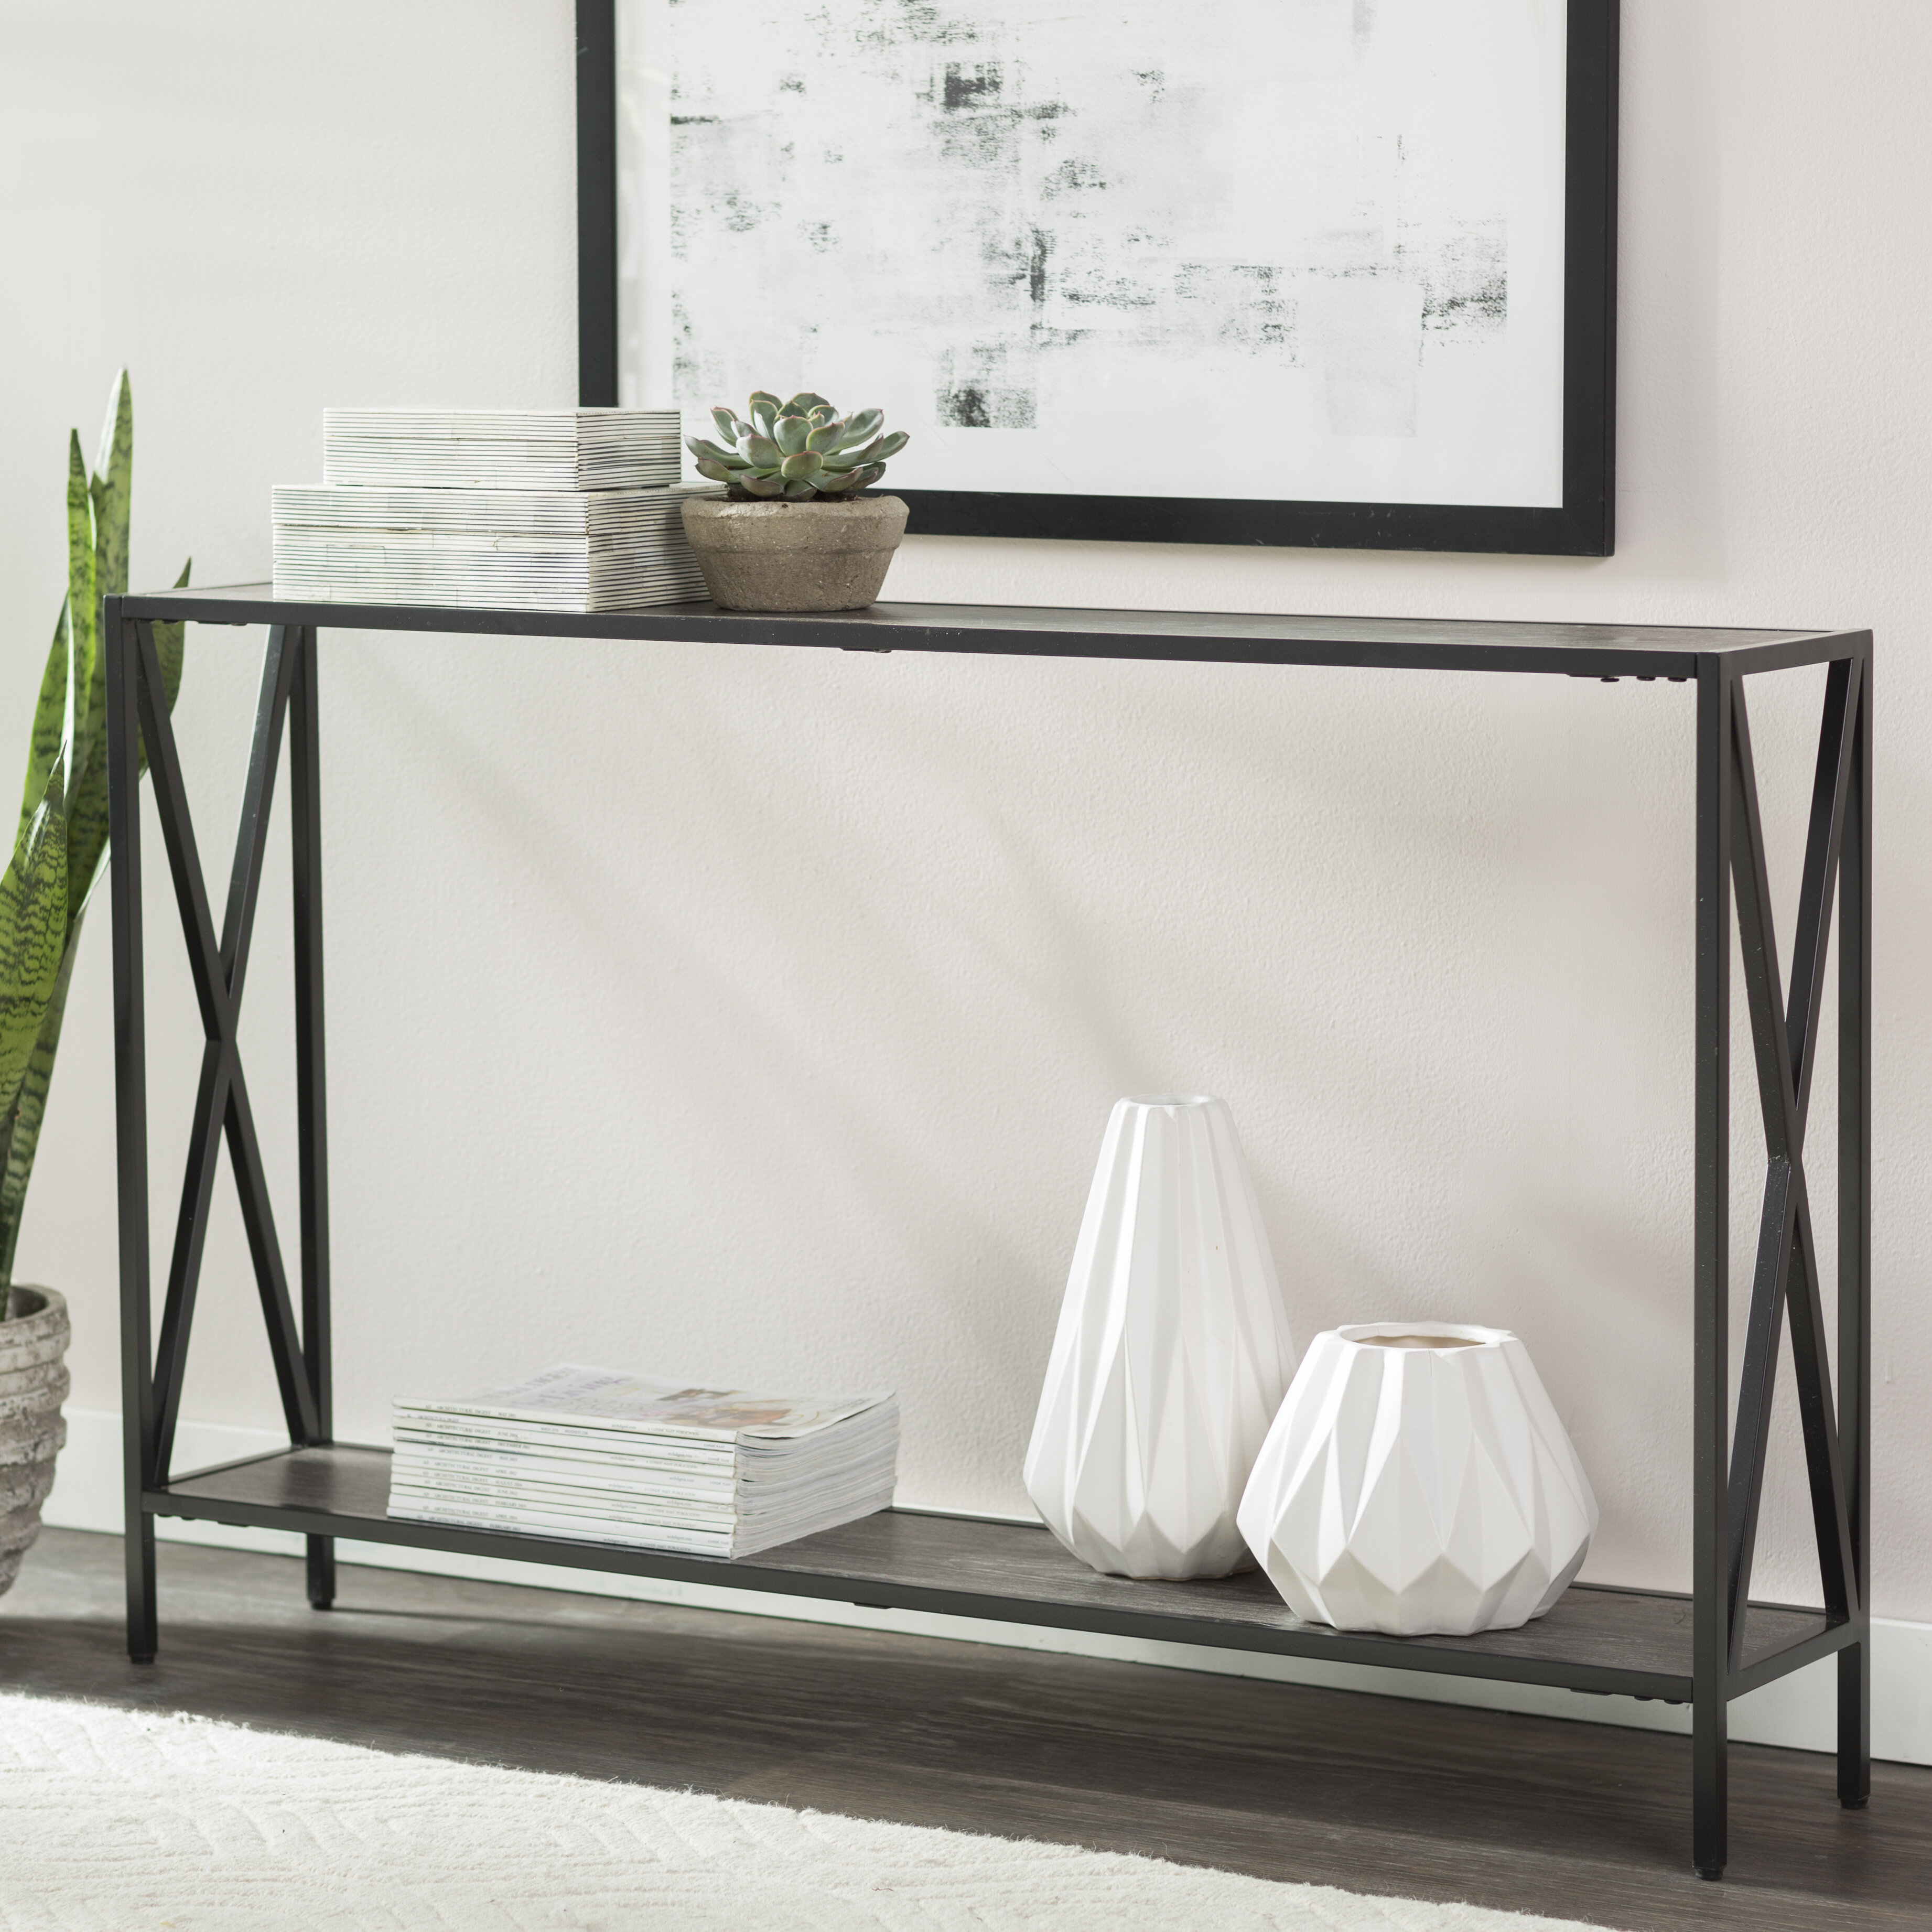 Andover Mills Abbottsmoor Metal Frame Console Table & Reviews | Wayfair